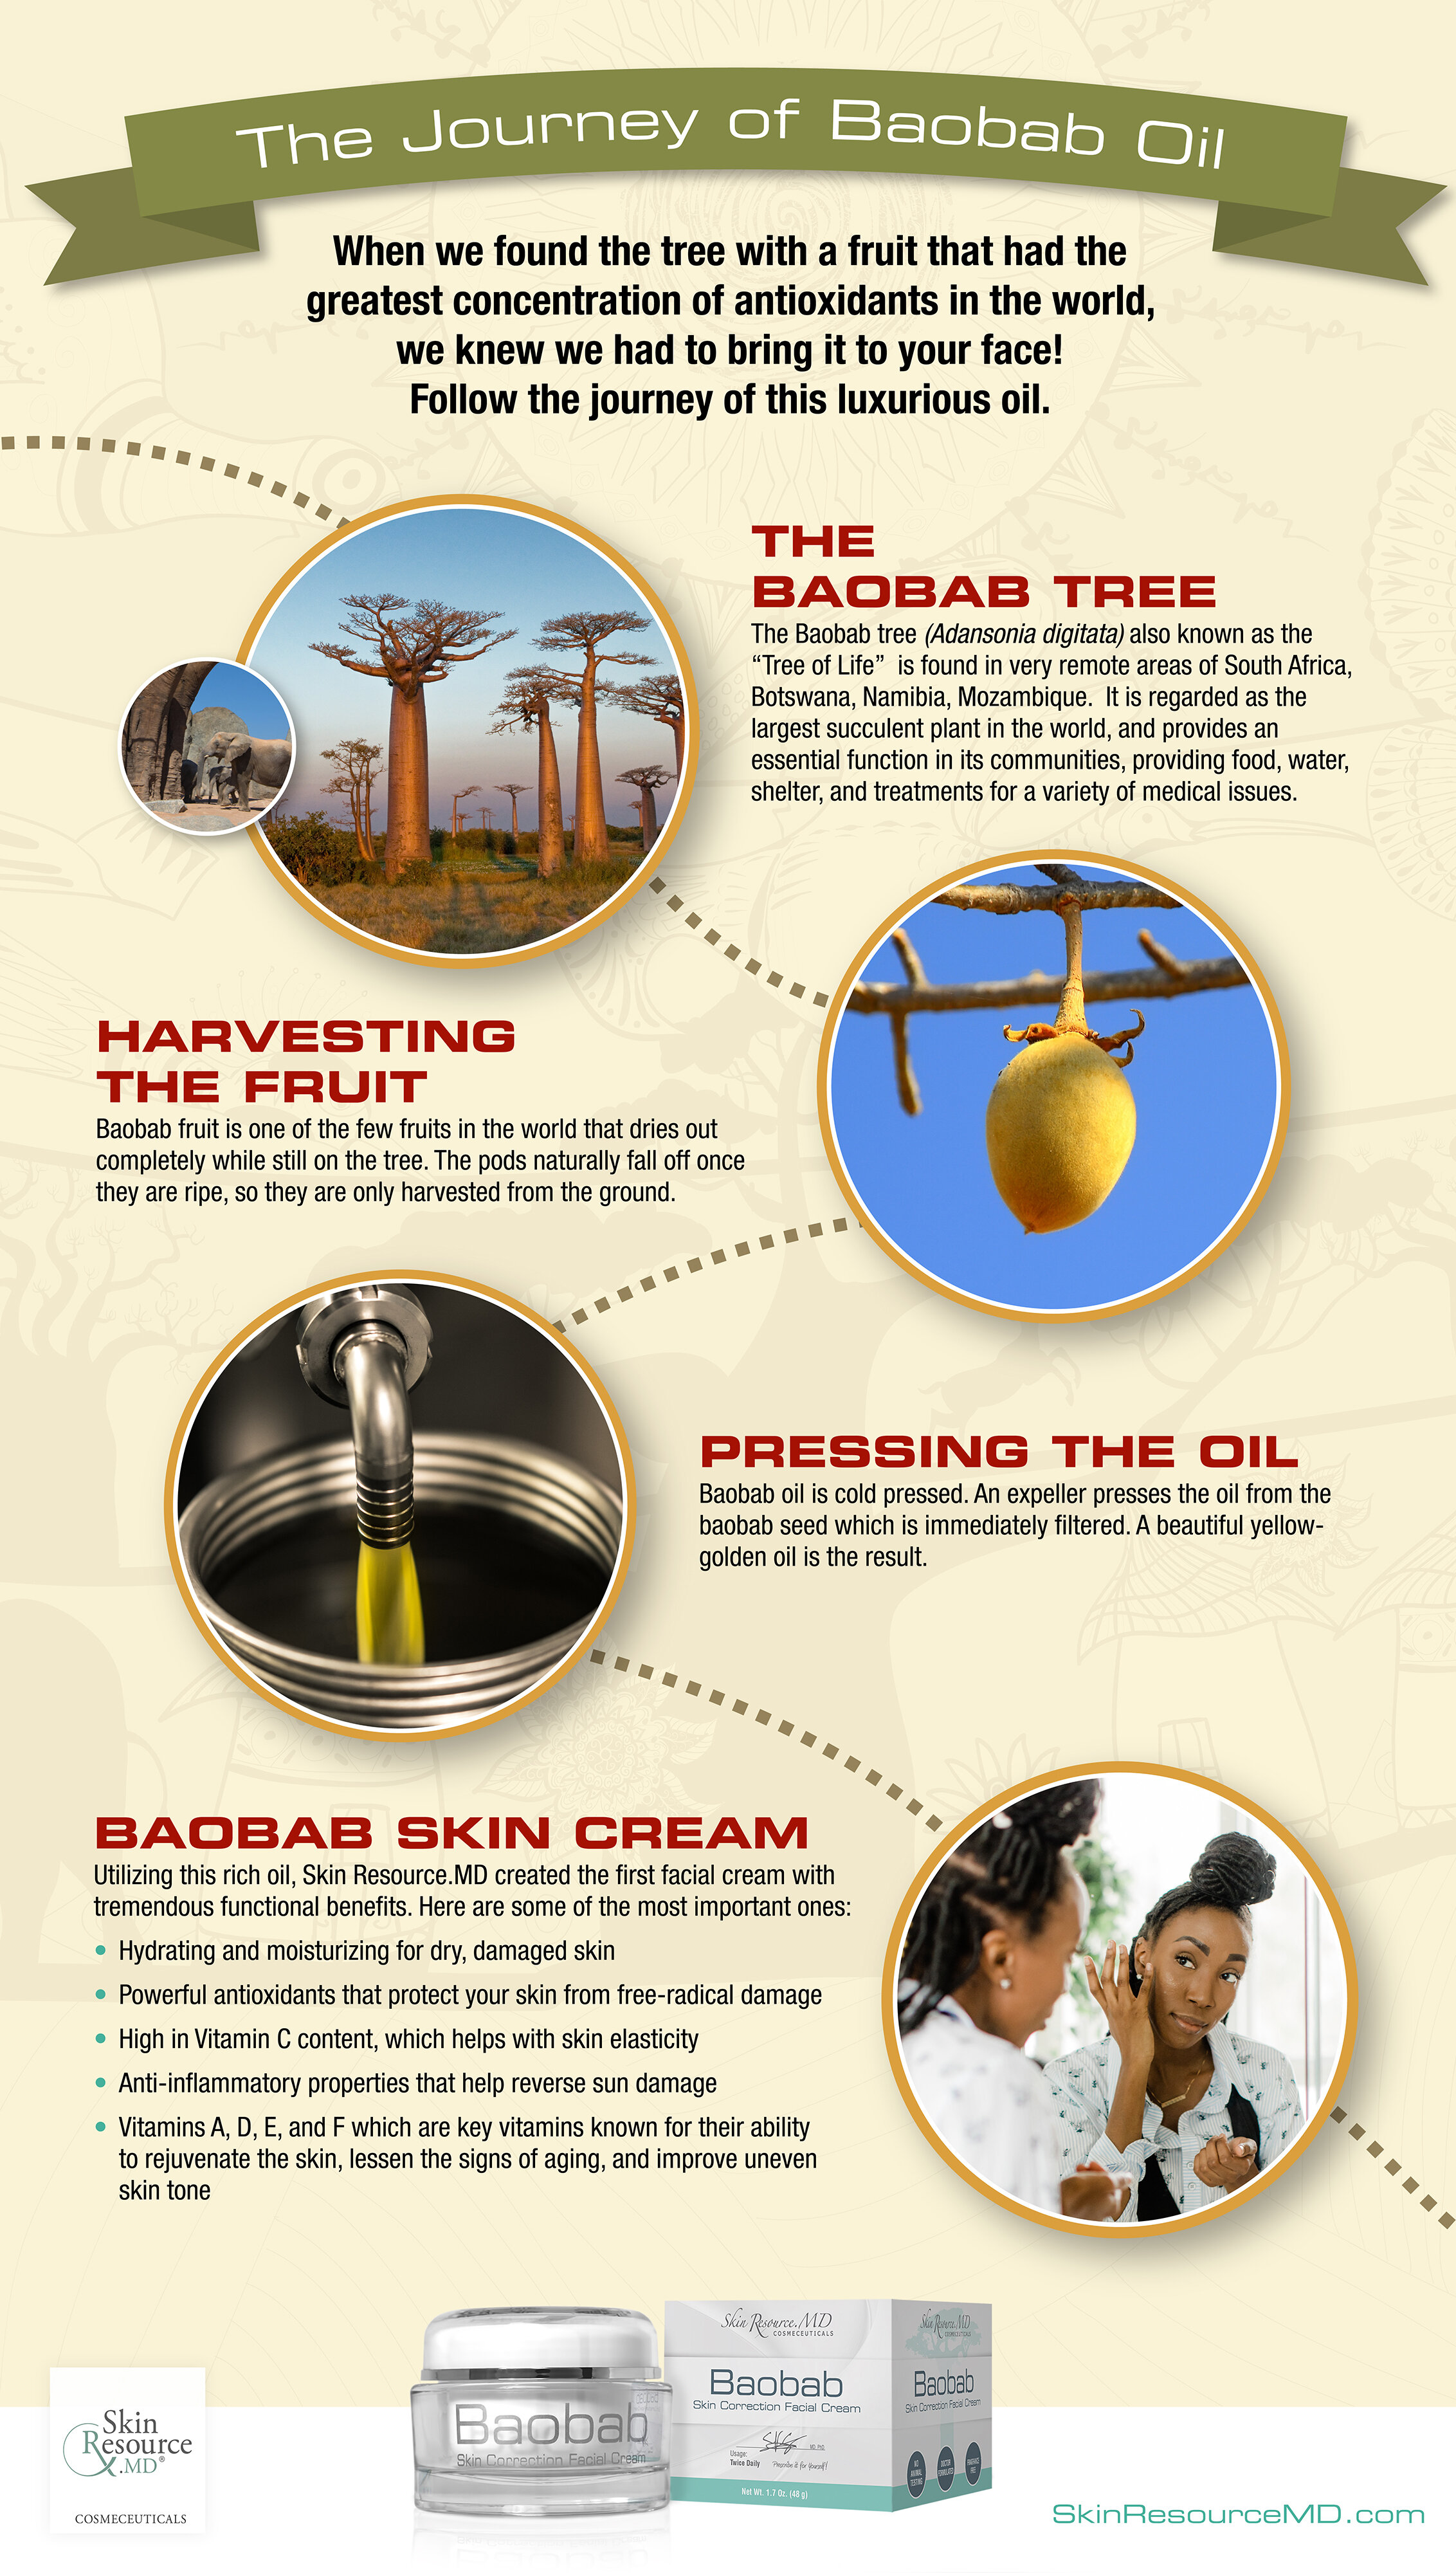 Baobab oil journey infographic2.jpeg